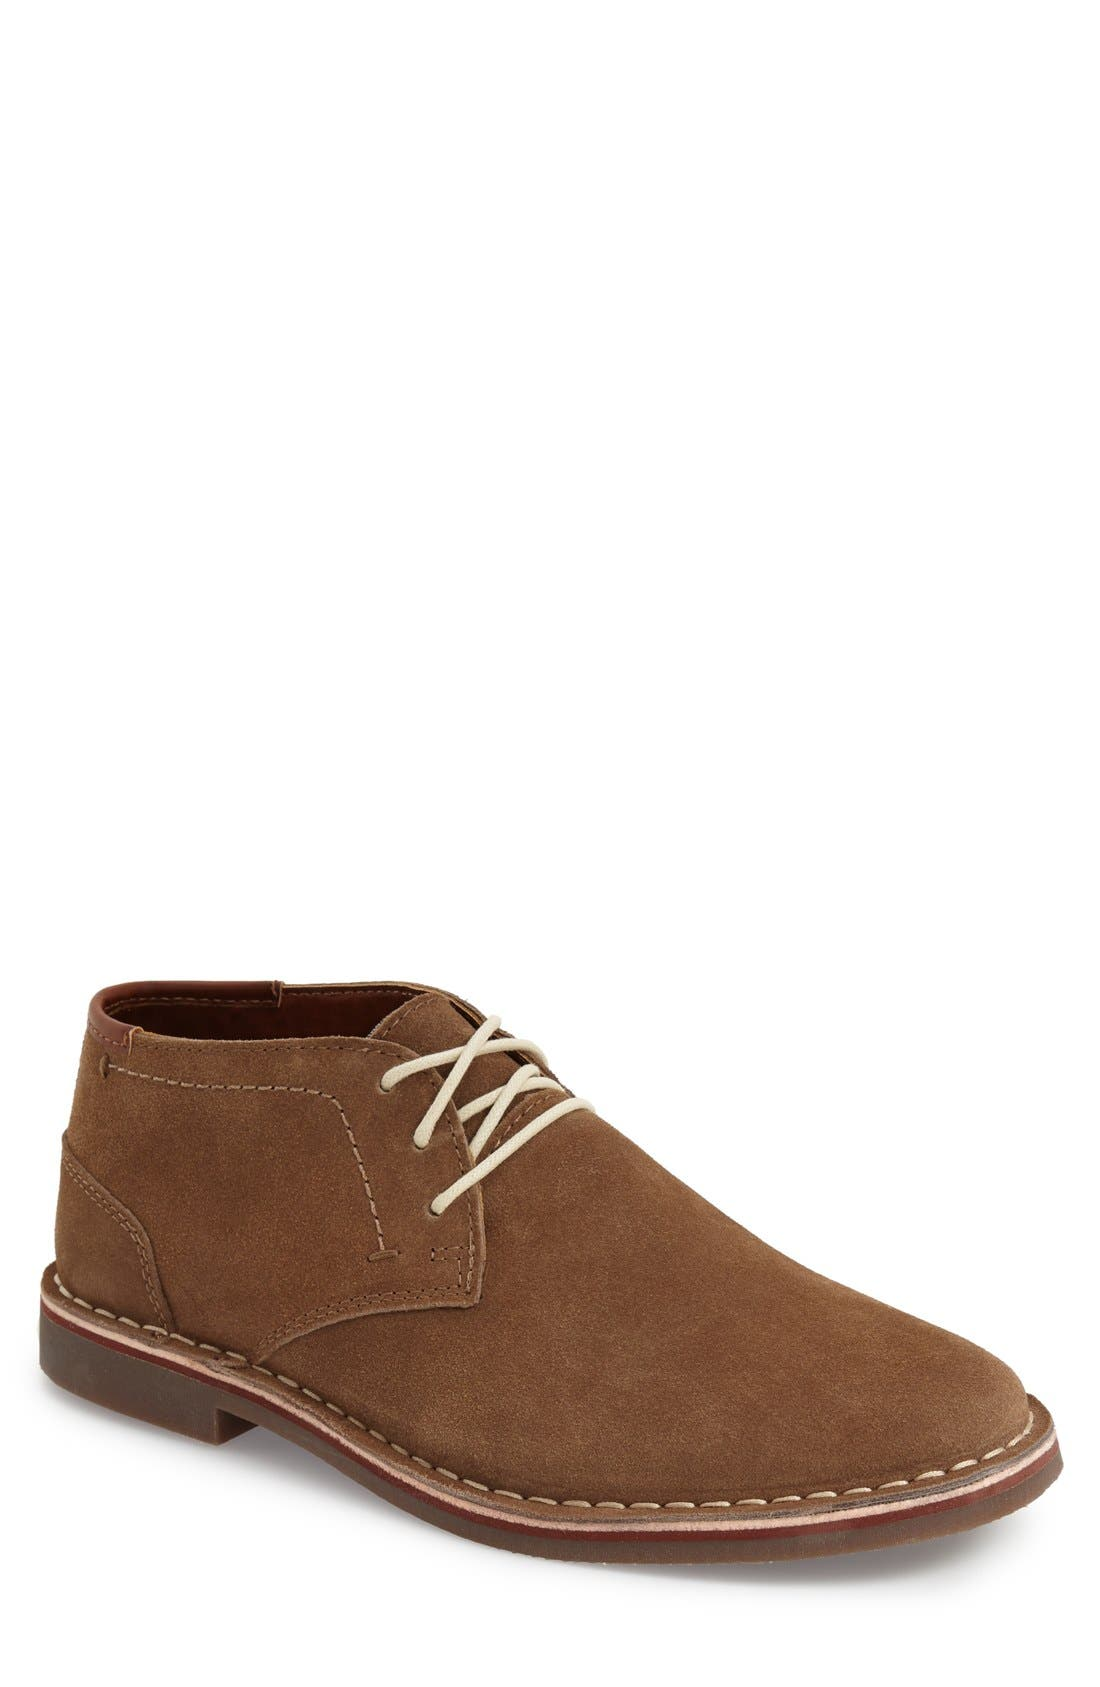 'Desert Sun' Chukka Boot,                             Main thumbnail 1, color,                             Taupe Suede